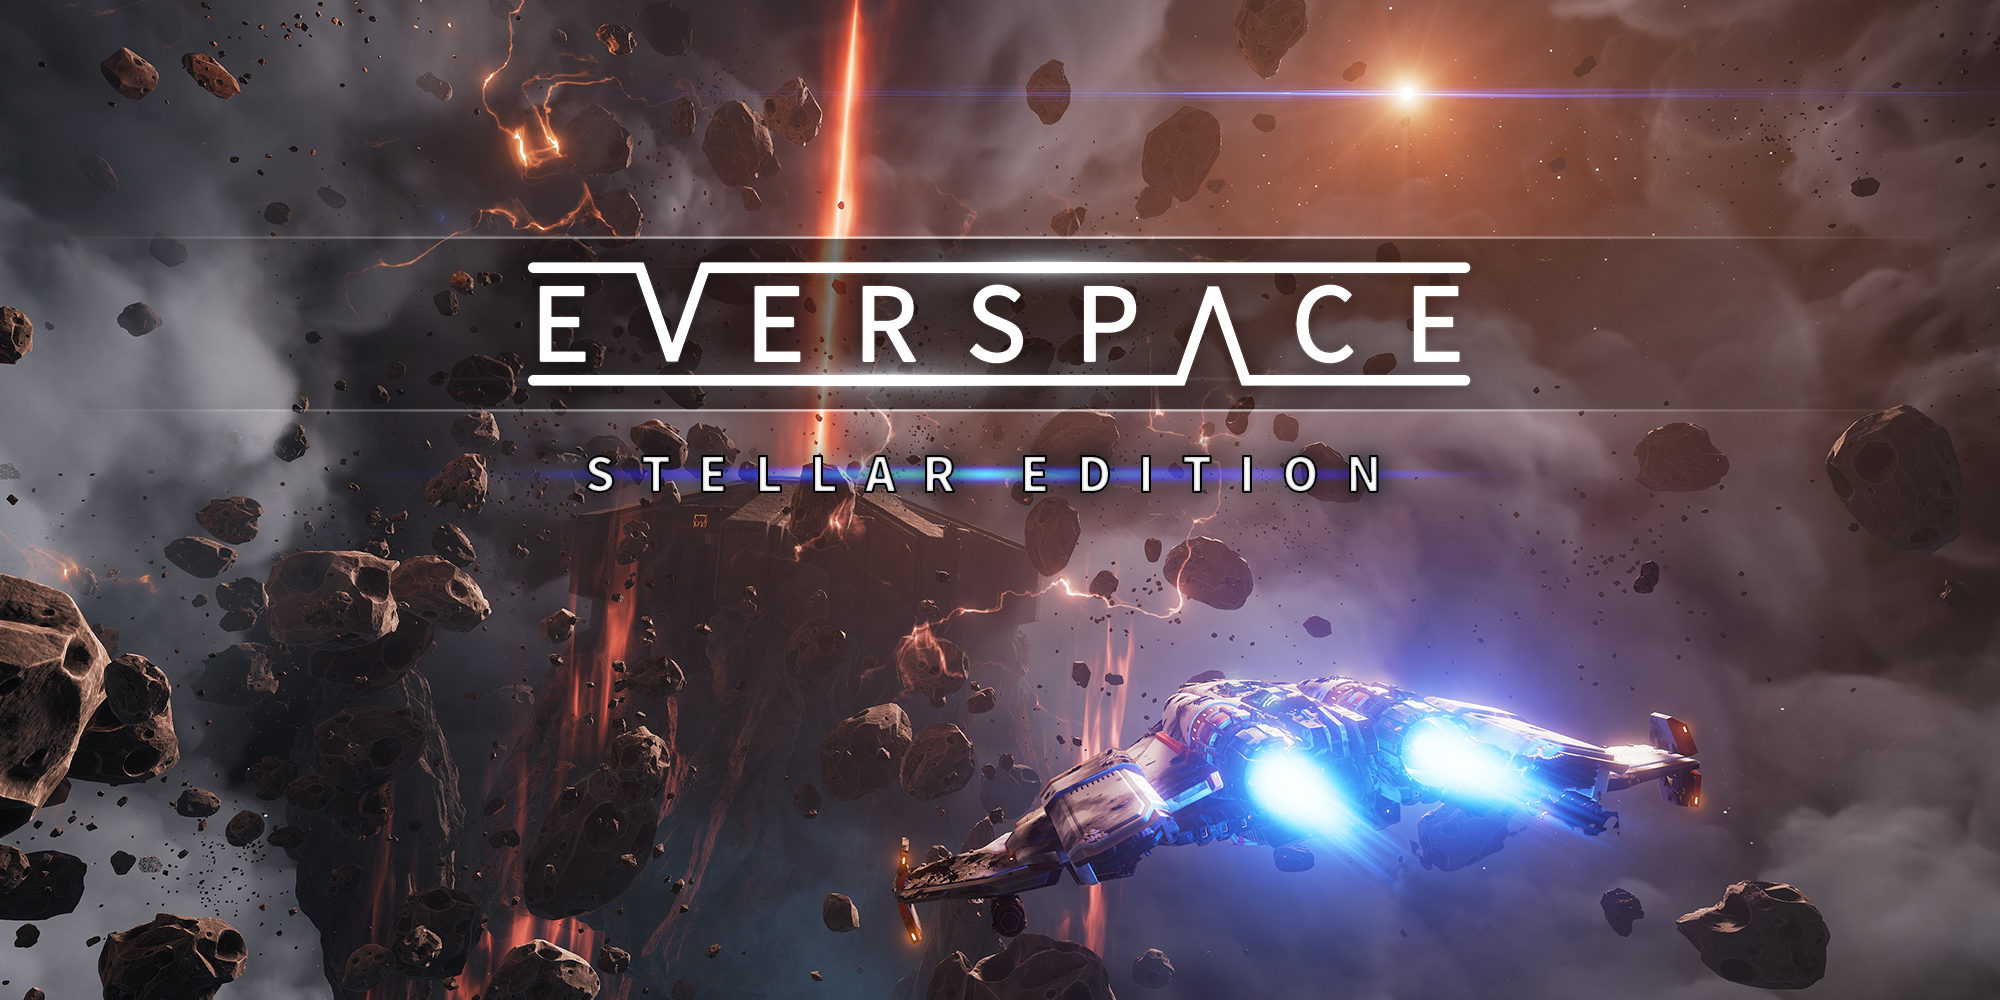 Everspace: Stellar Edition confirmed for digital release on December